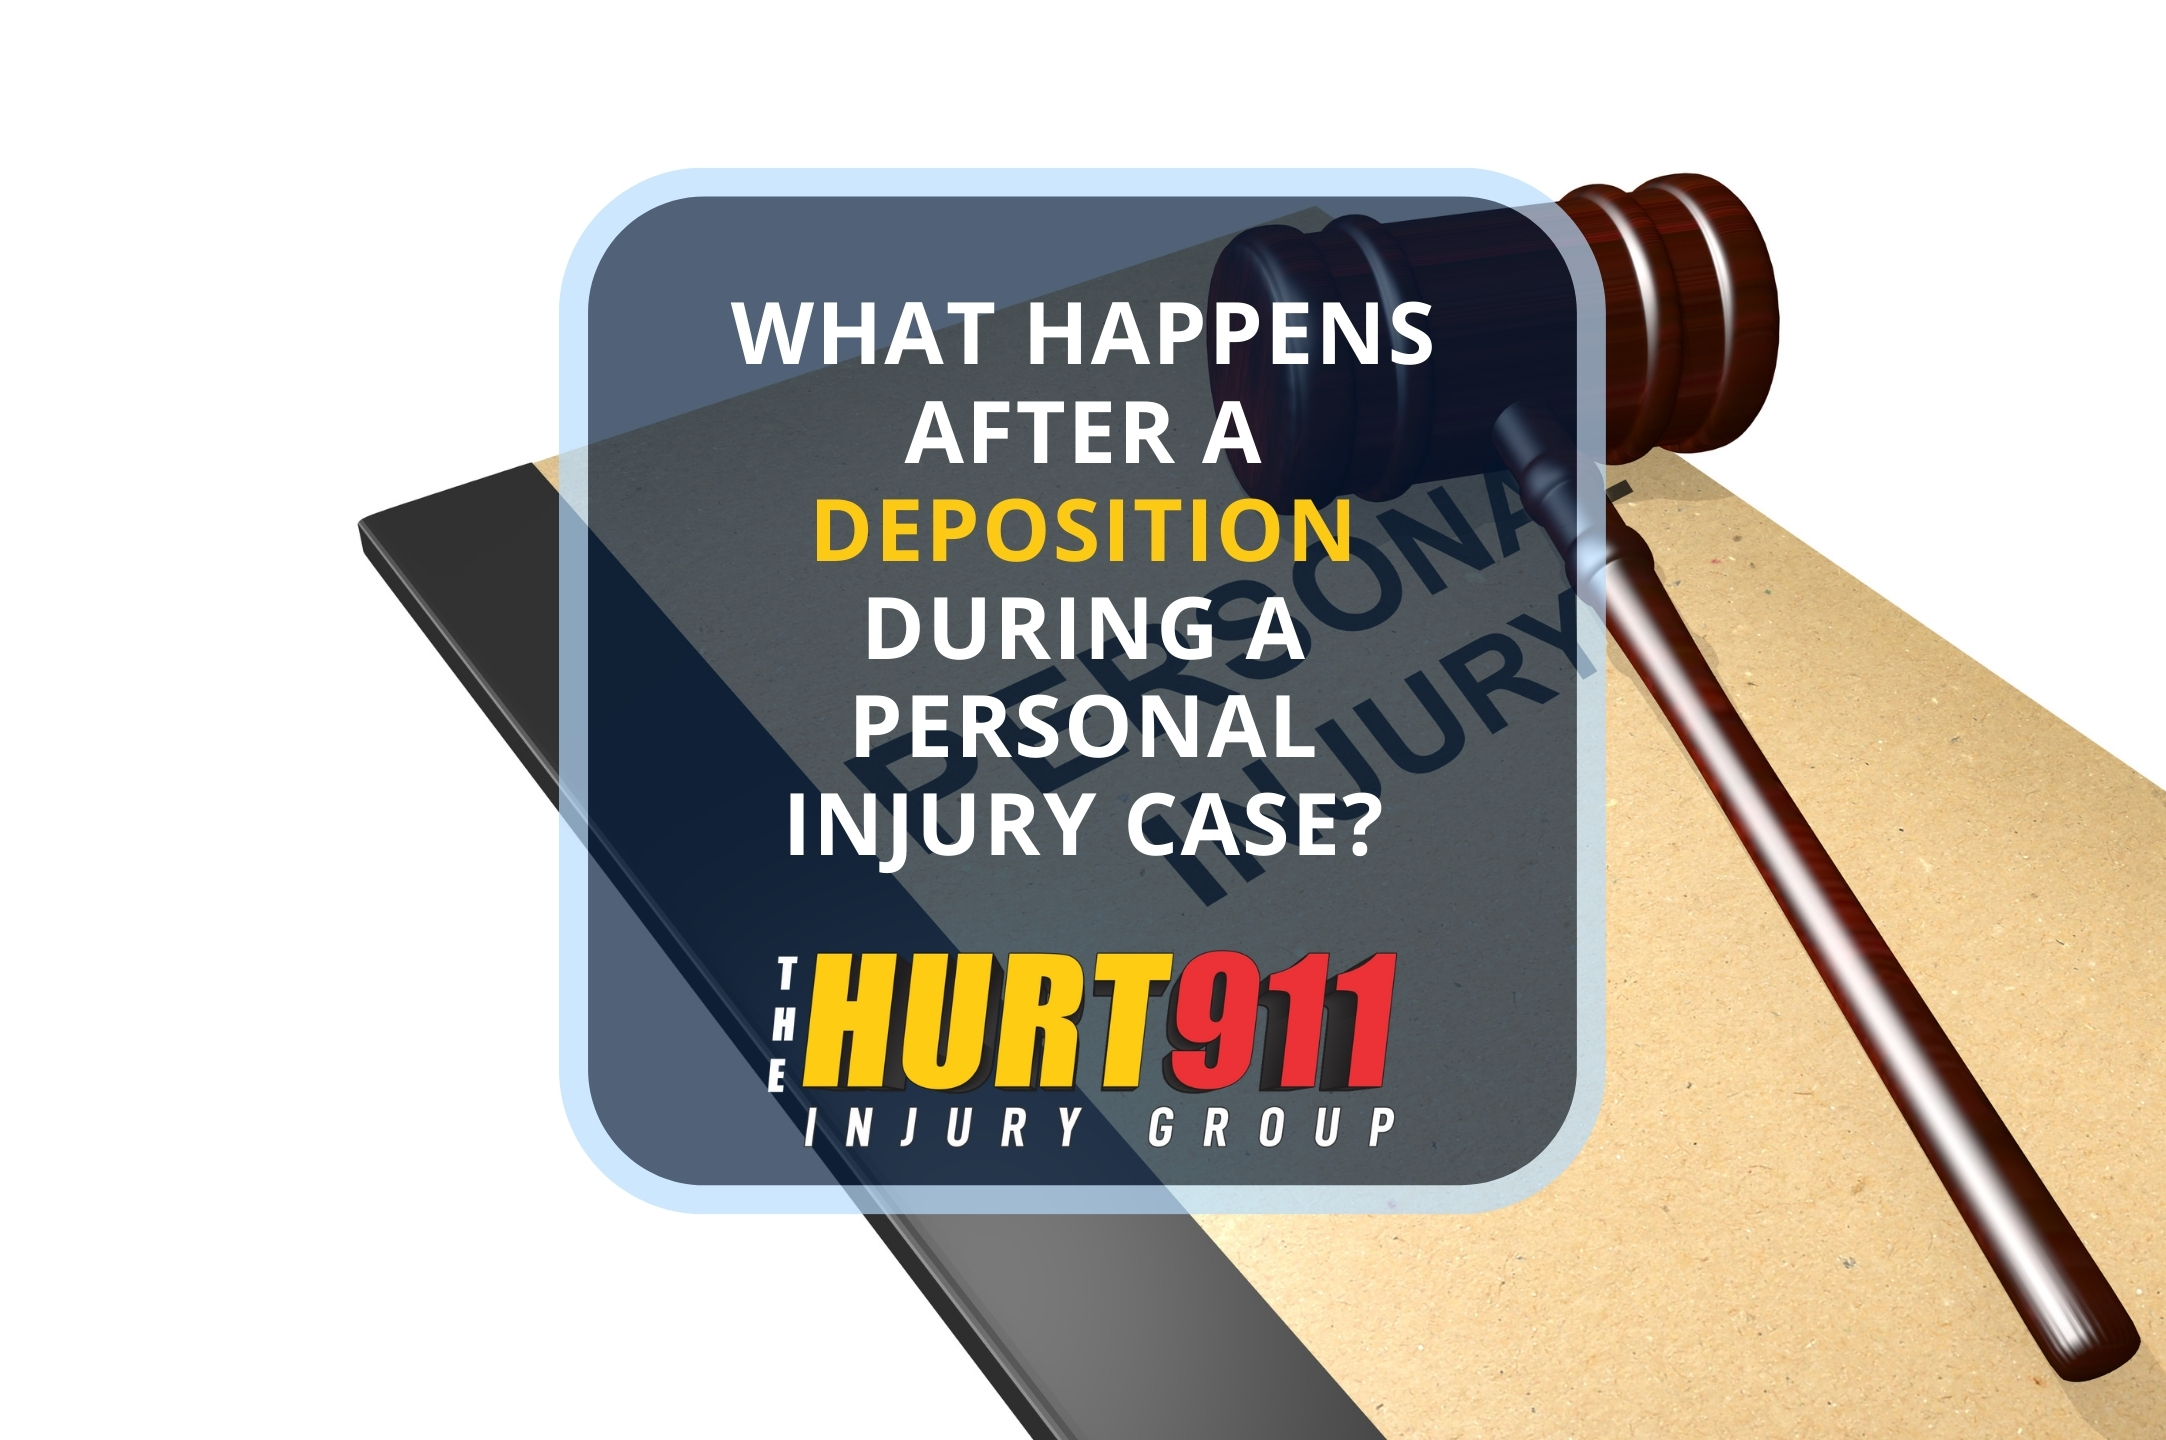 What Happens After a Deposition During a Personal Injury Case?